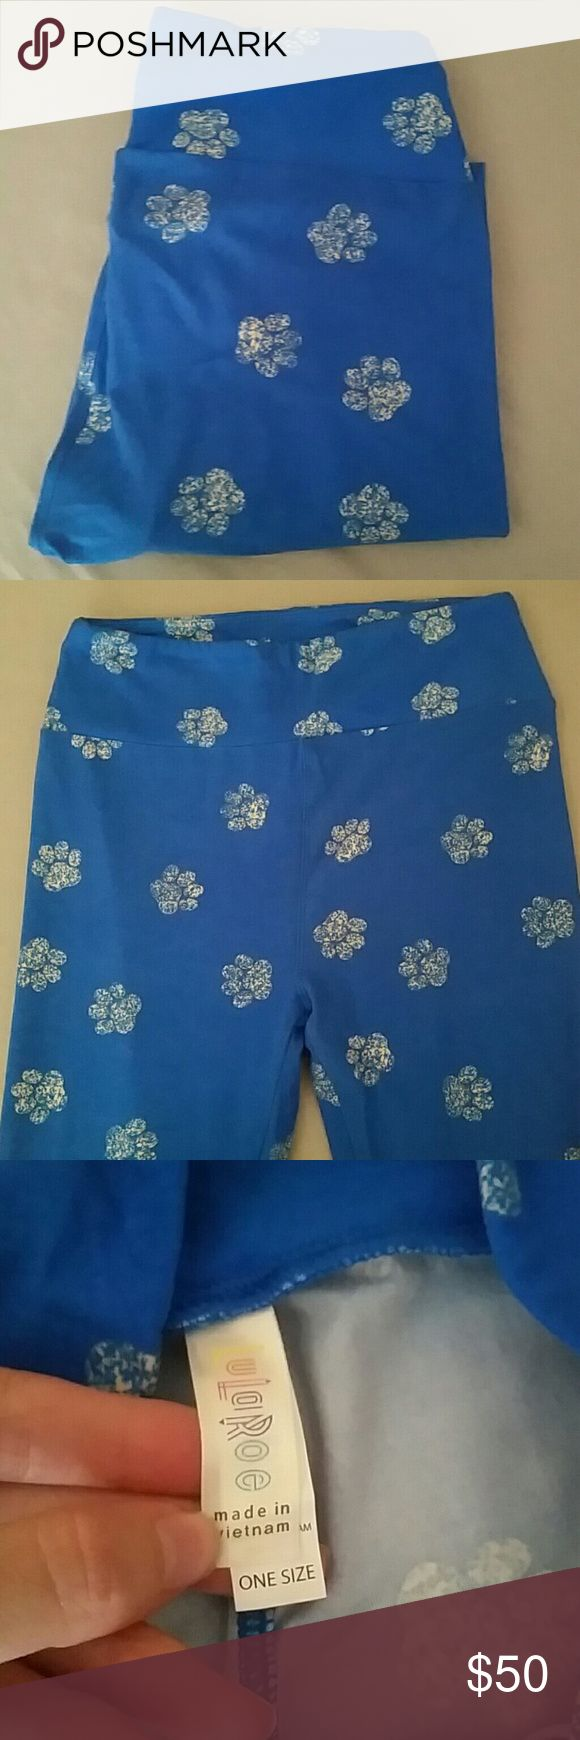 Lularoe OS Pawprints HTF Super hard to find Lularoe OS Pawprints. The last shot is a crotch shot. They have been worn and washed once but they are in excellent condition. LuLaRoe Pants Leggings